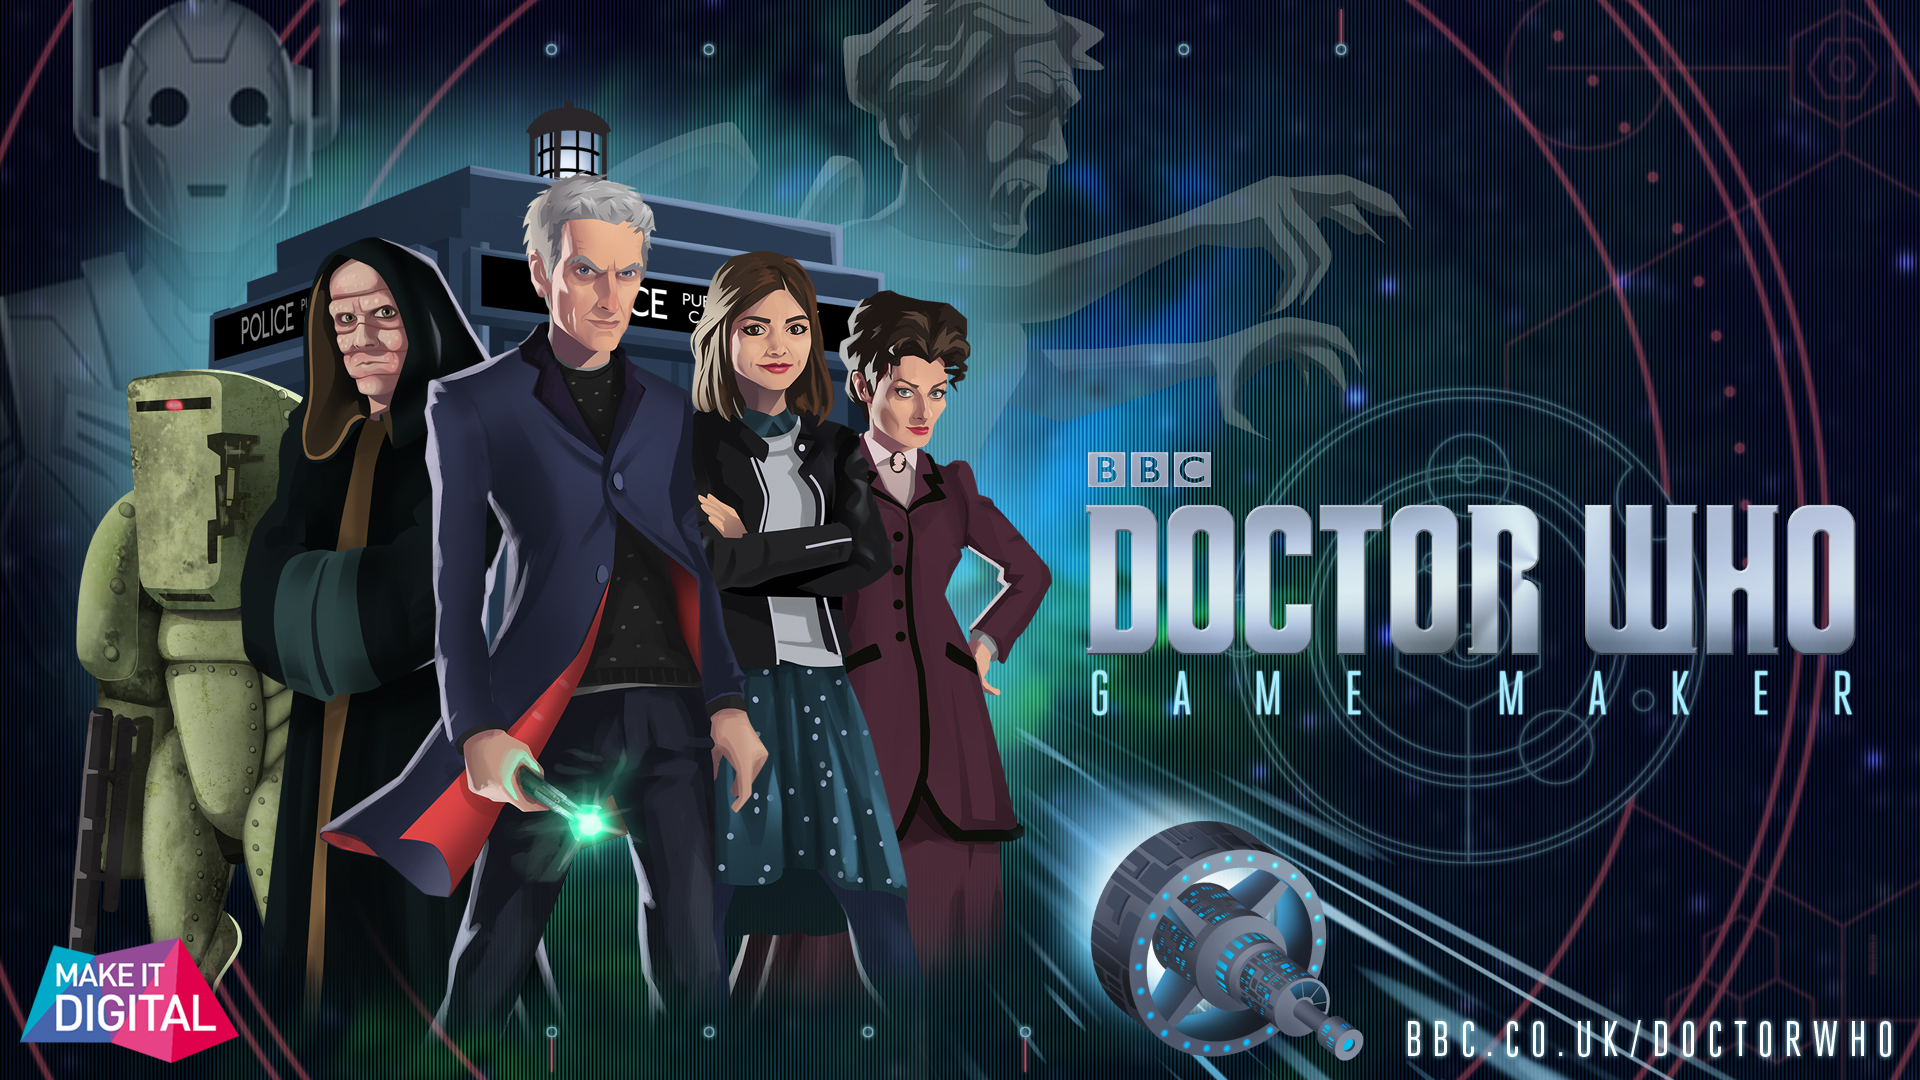 Doctor Who: Game Maker (Credit: BBC)